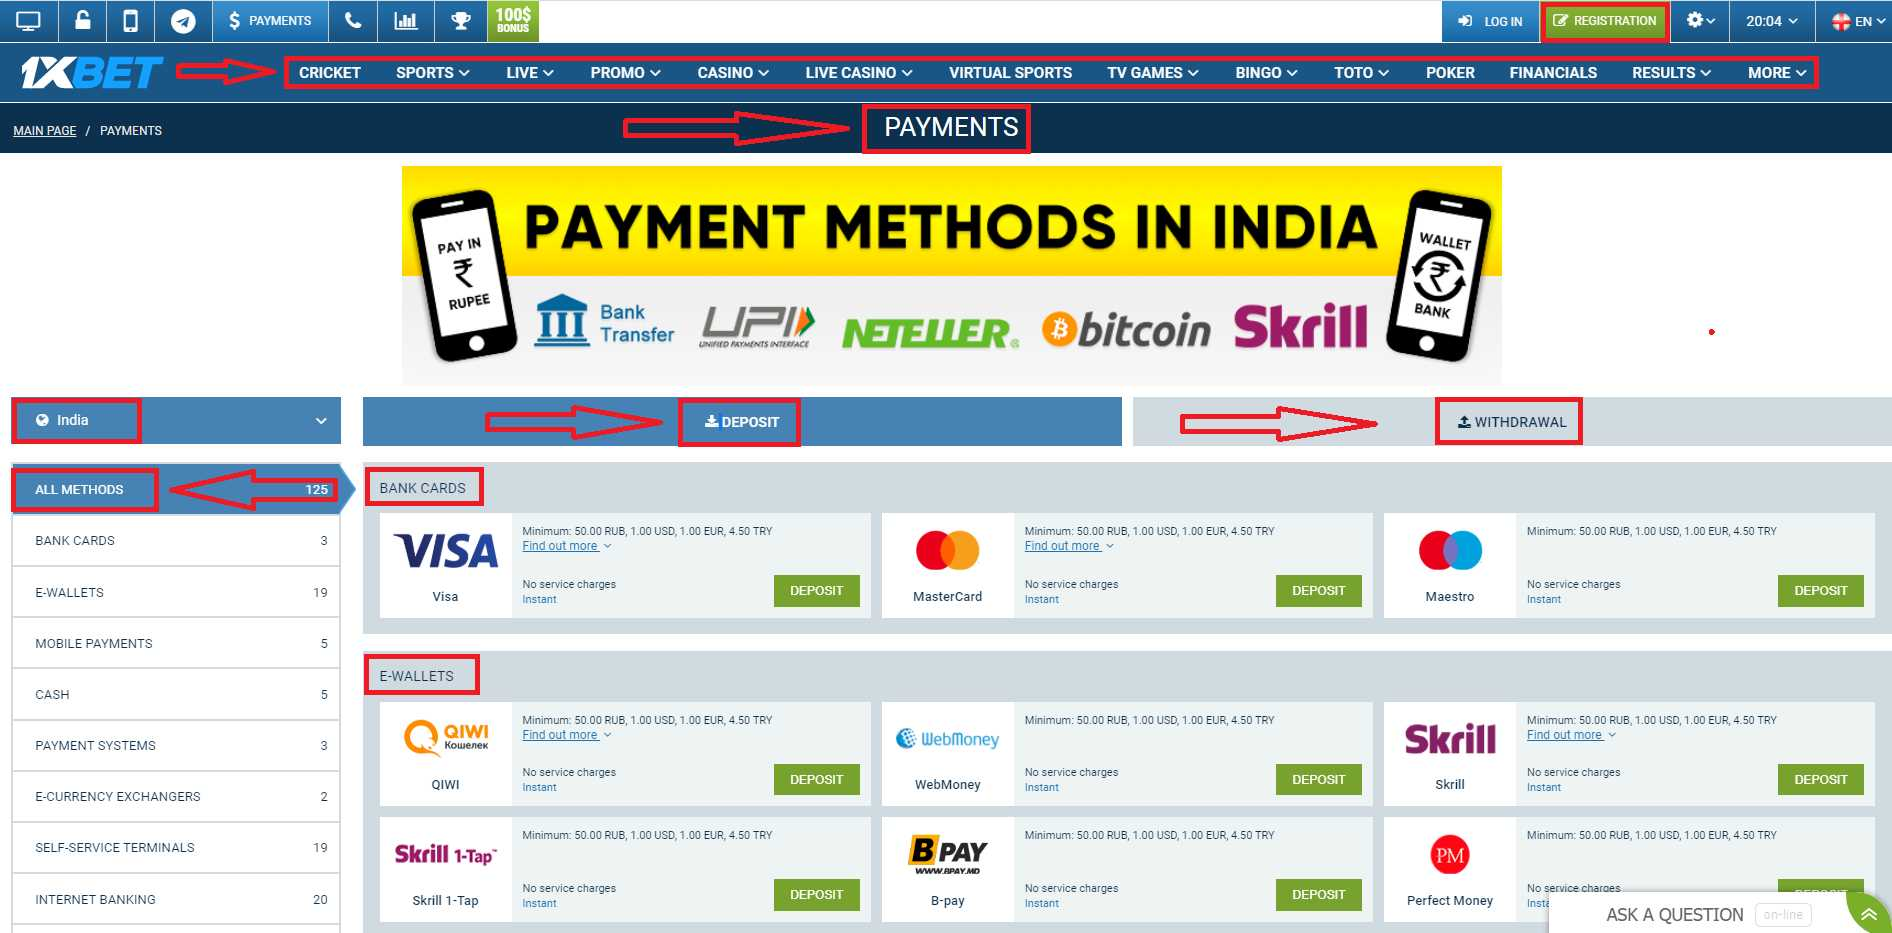 Deposit and Withdrawal Options of 1xBet India